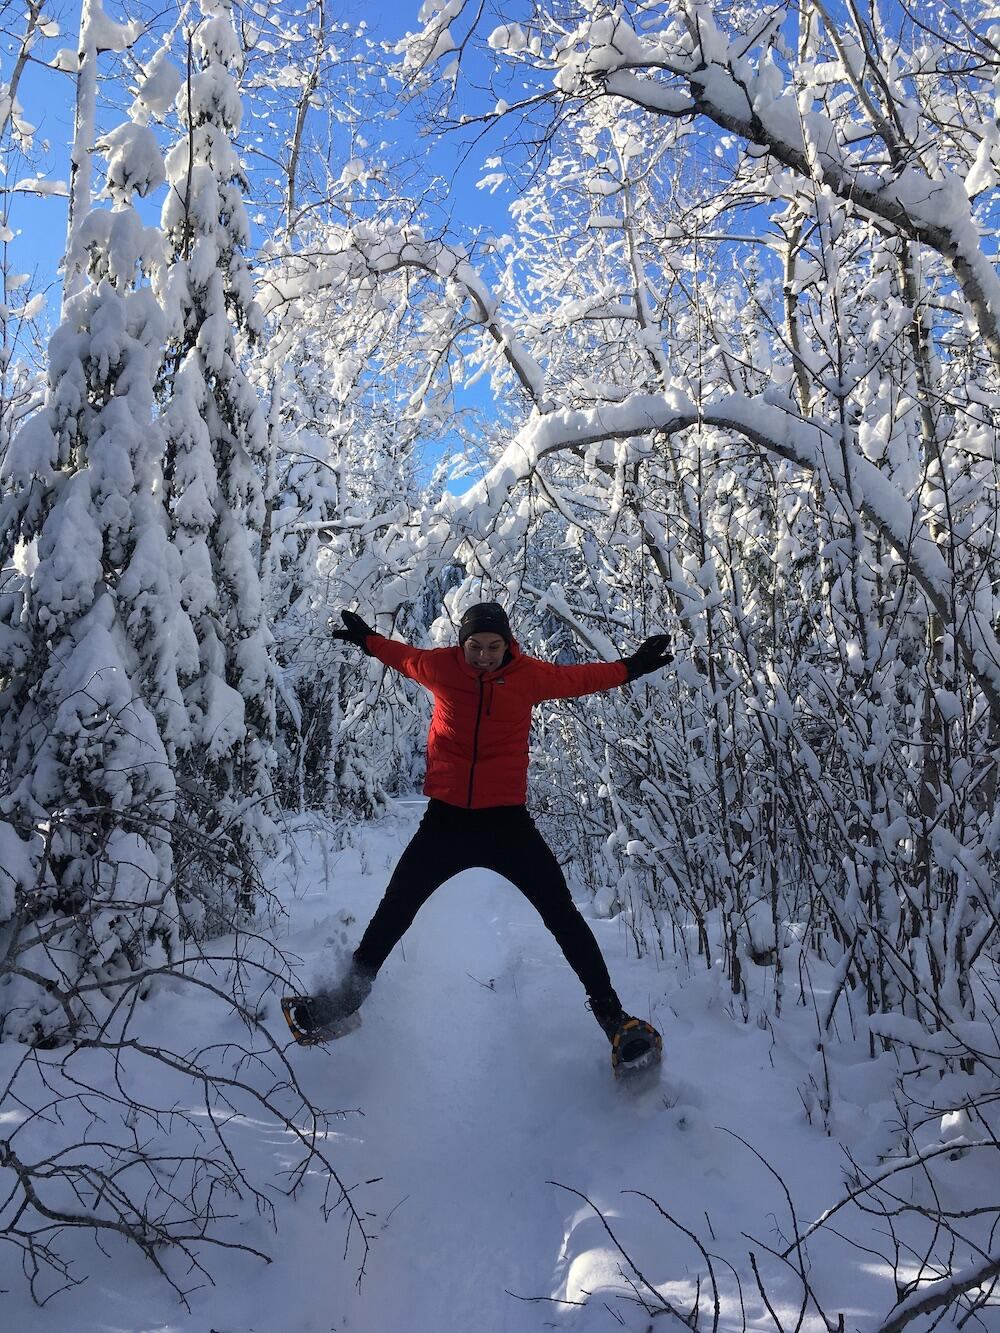 Woman on snowshoes jumping on a snowy trail